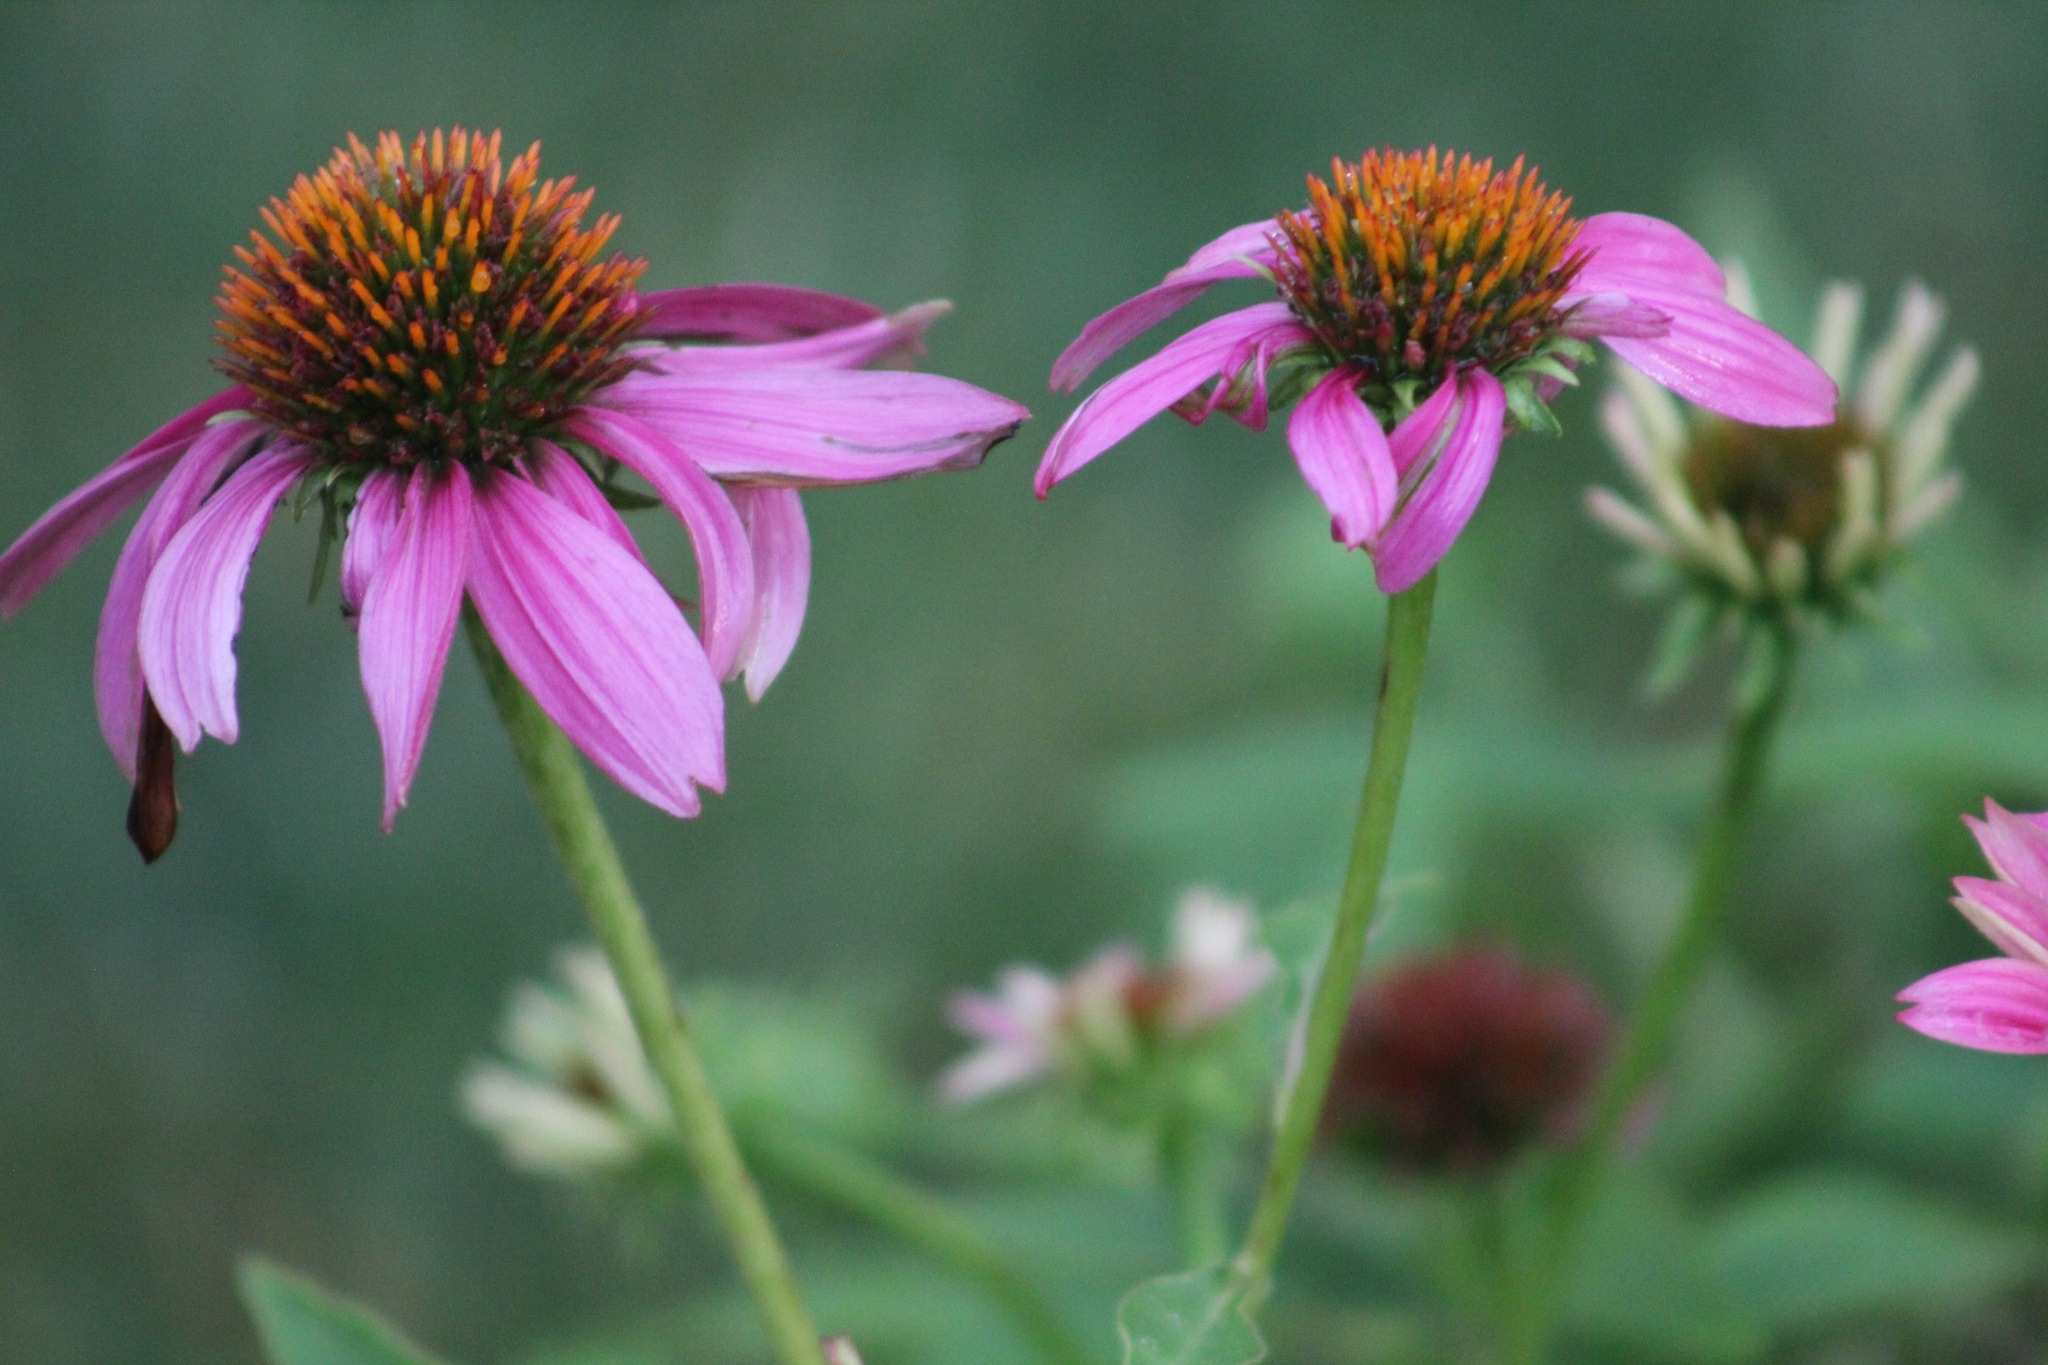 pink flowers by mary.c.bergin.3